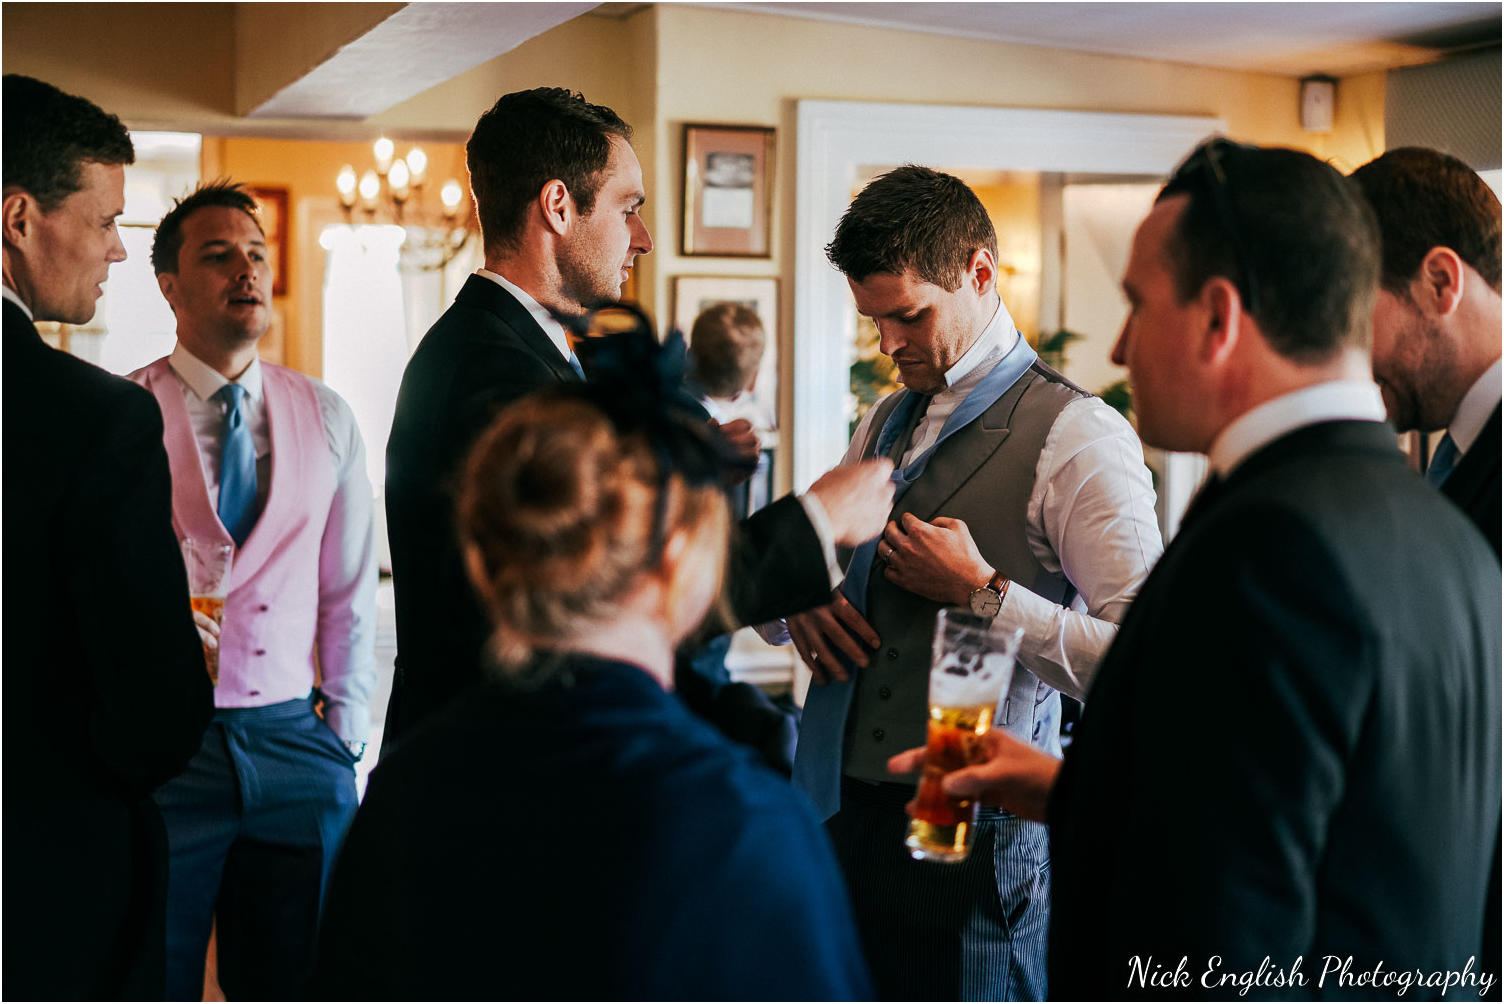 Mitton_Hall_Wedding_Photographer-12.jpg